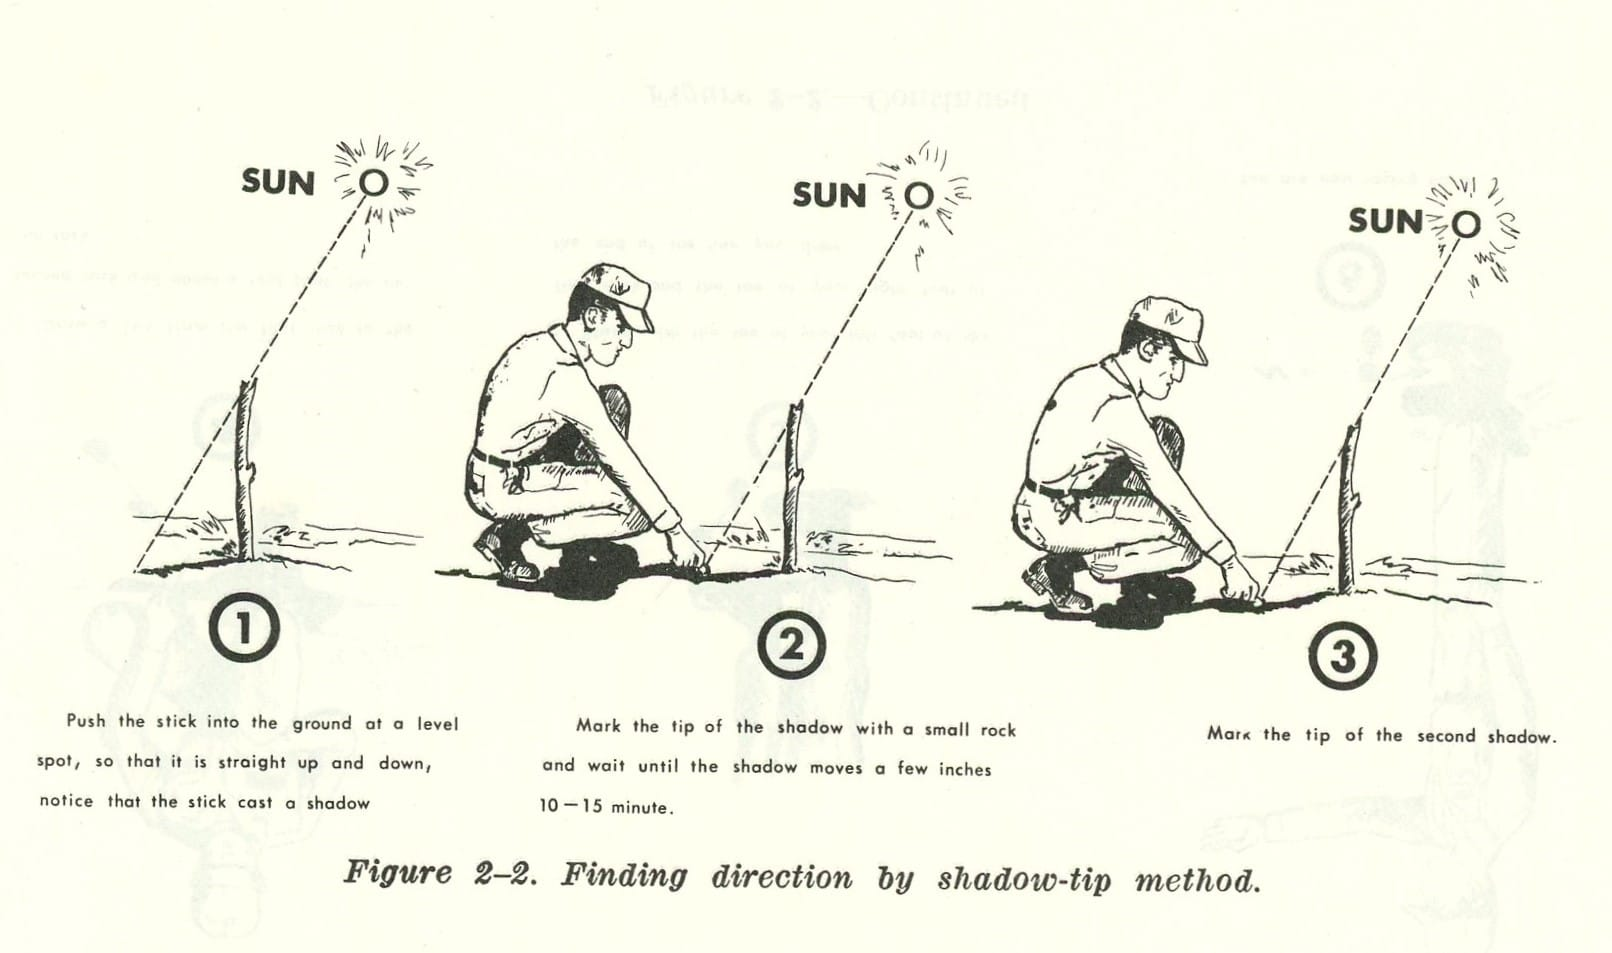 vintage illustration find compass direction using sun